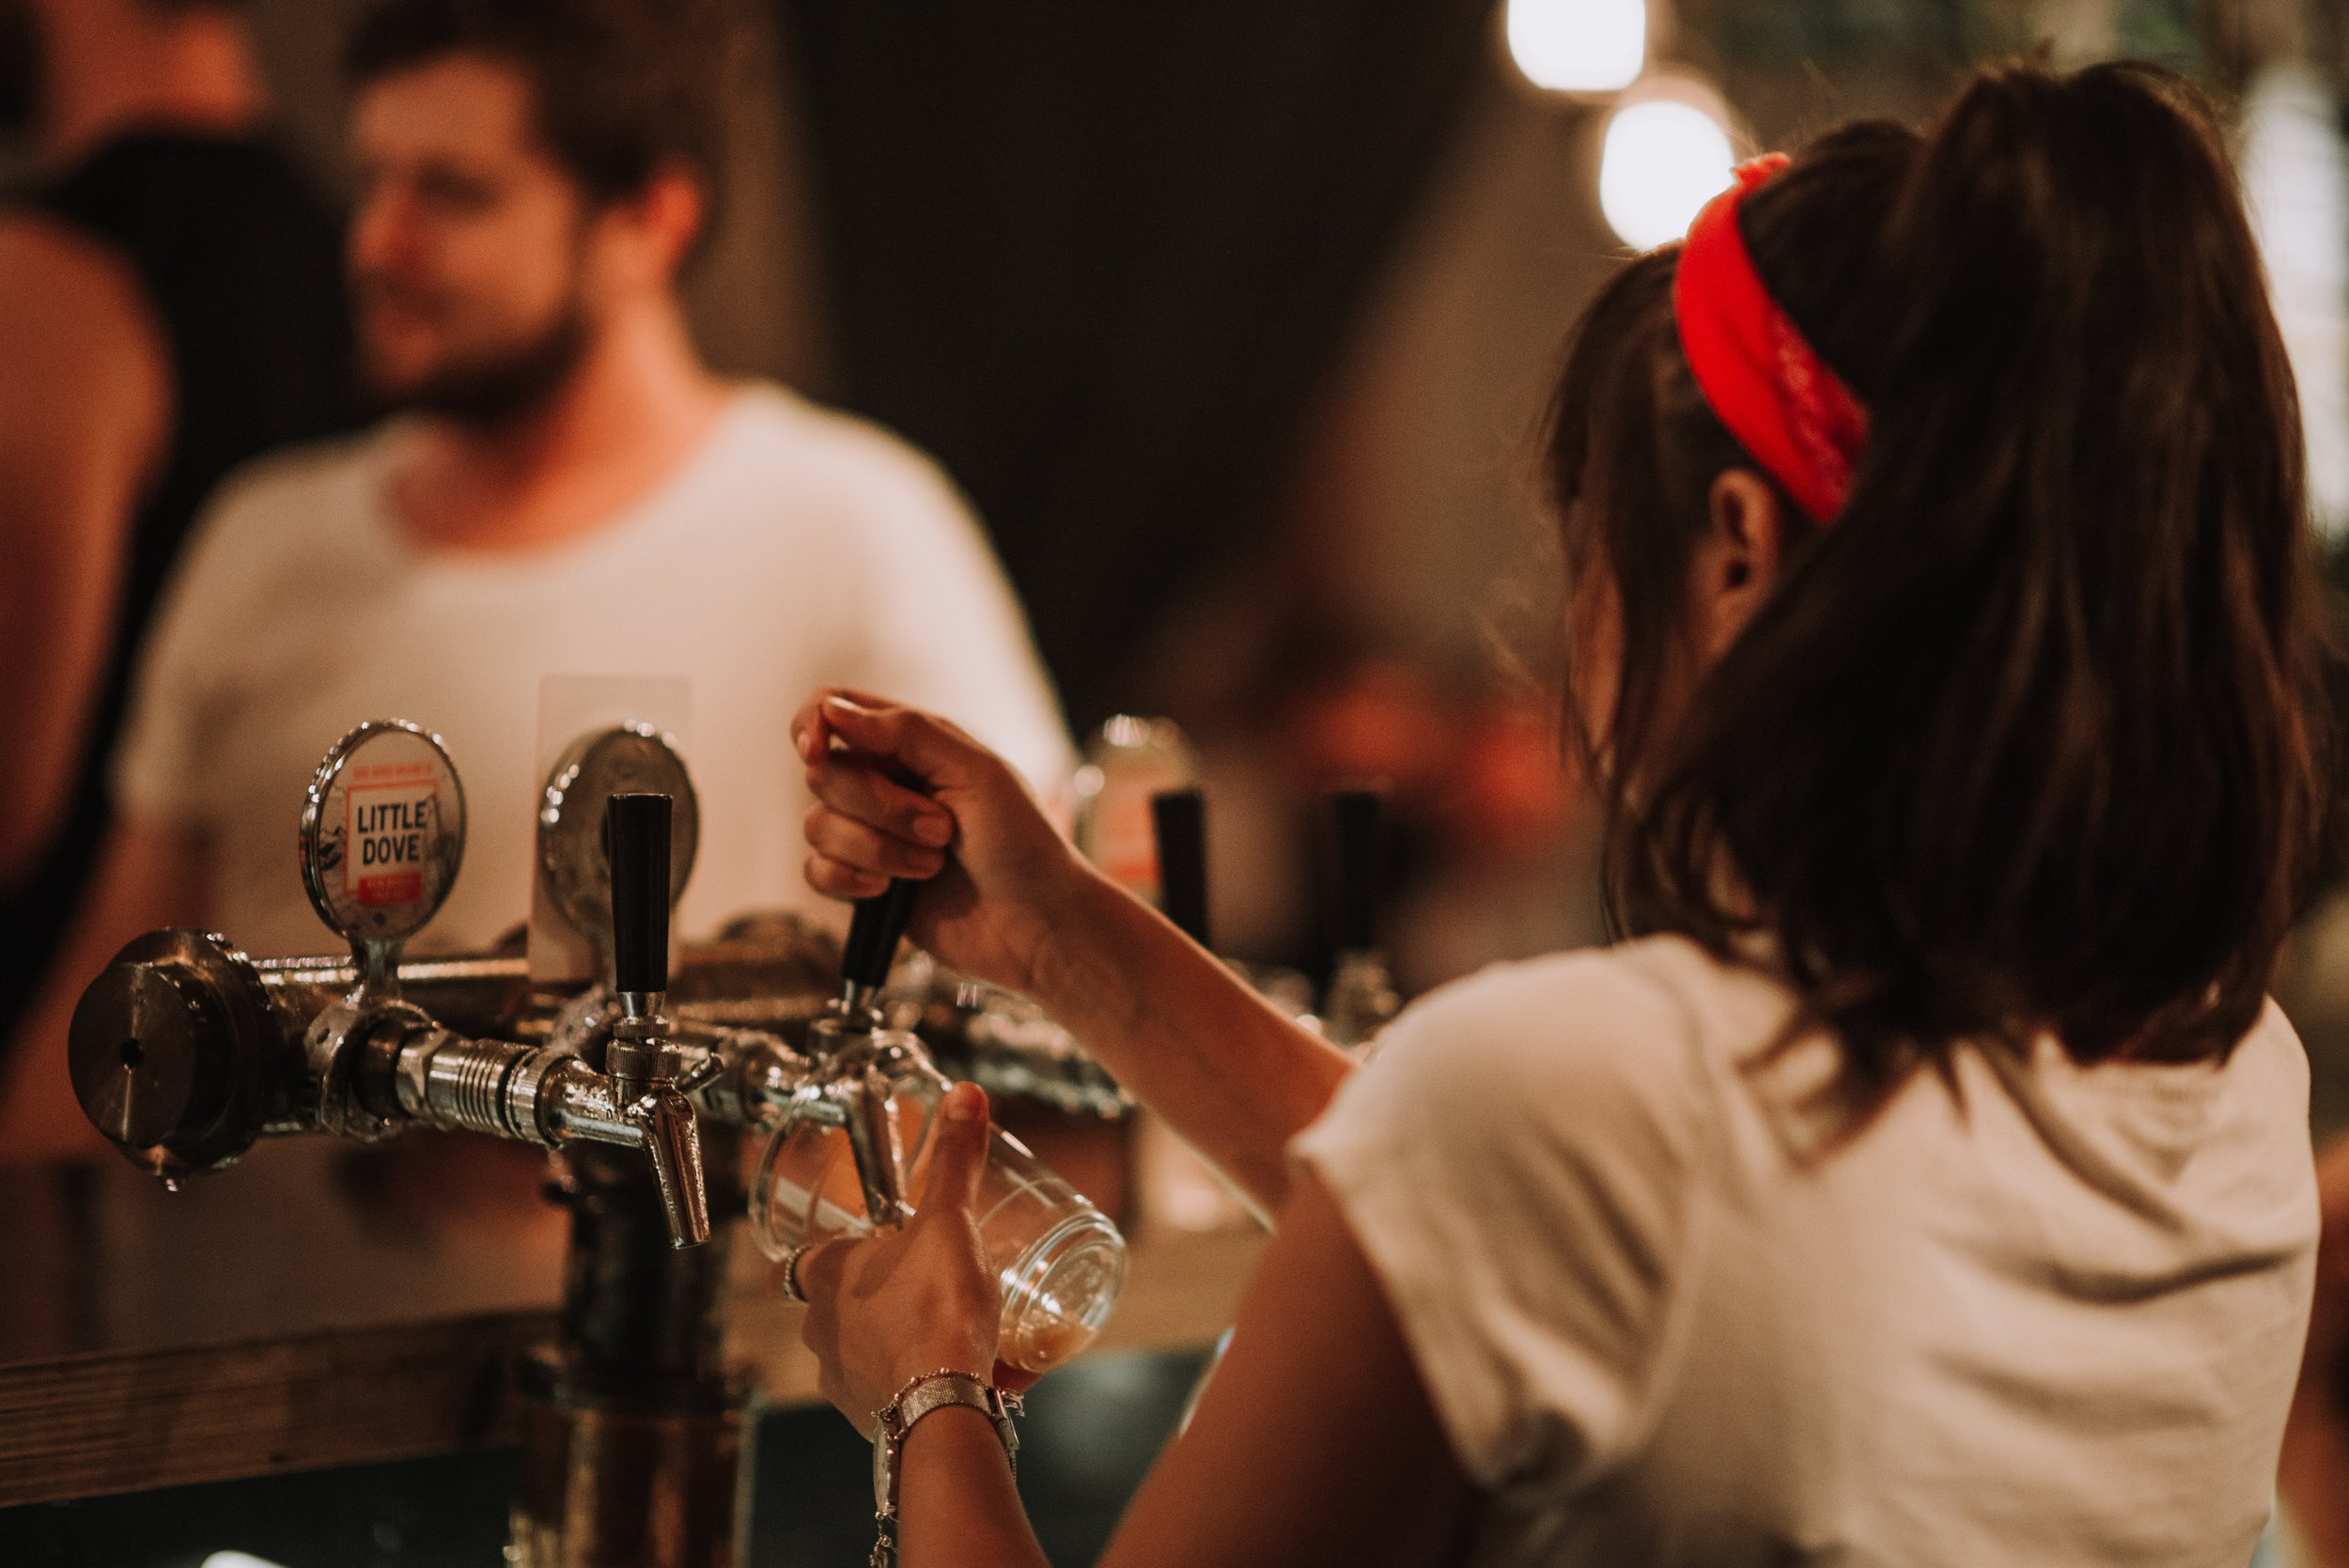 LOVELENSCAPES PHOTOGRAPHY X THE BLACK BRISBANE X THE BLACK MARKET o KING OF WINGS o THE BUN MOBILE o BRISBANE FOOD TRUCKS o BRISBANE CRAFT BEER o 23.jpg